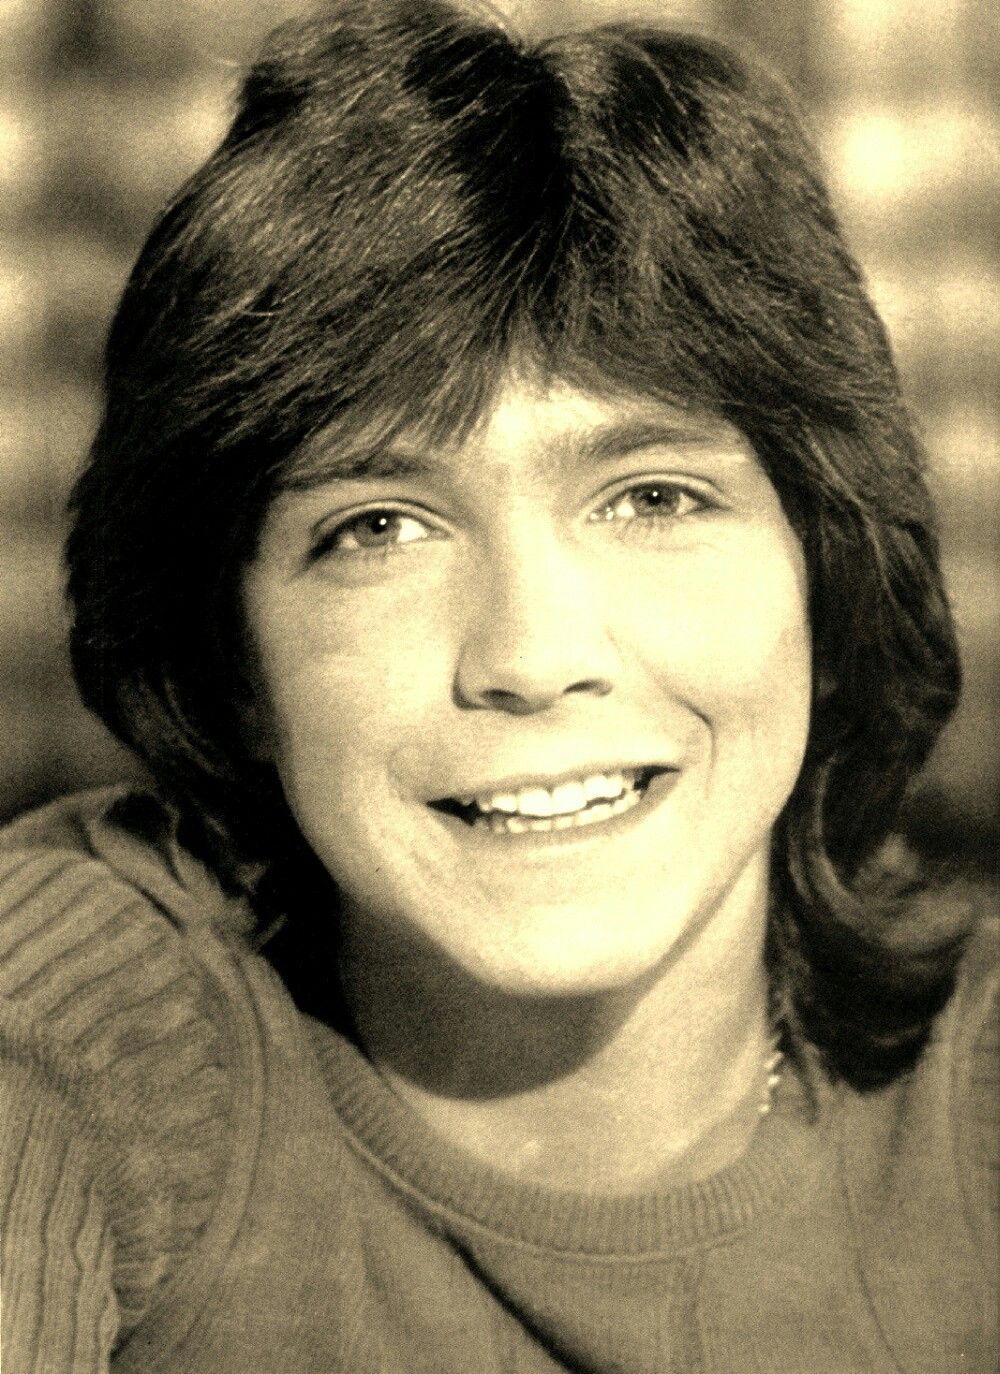 1970s early David Cassidy pop icon replica fridge magnet new